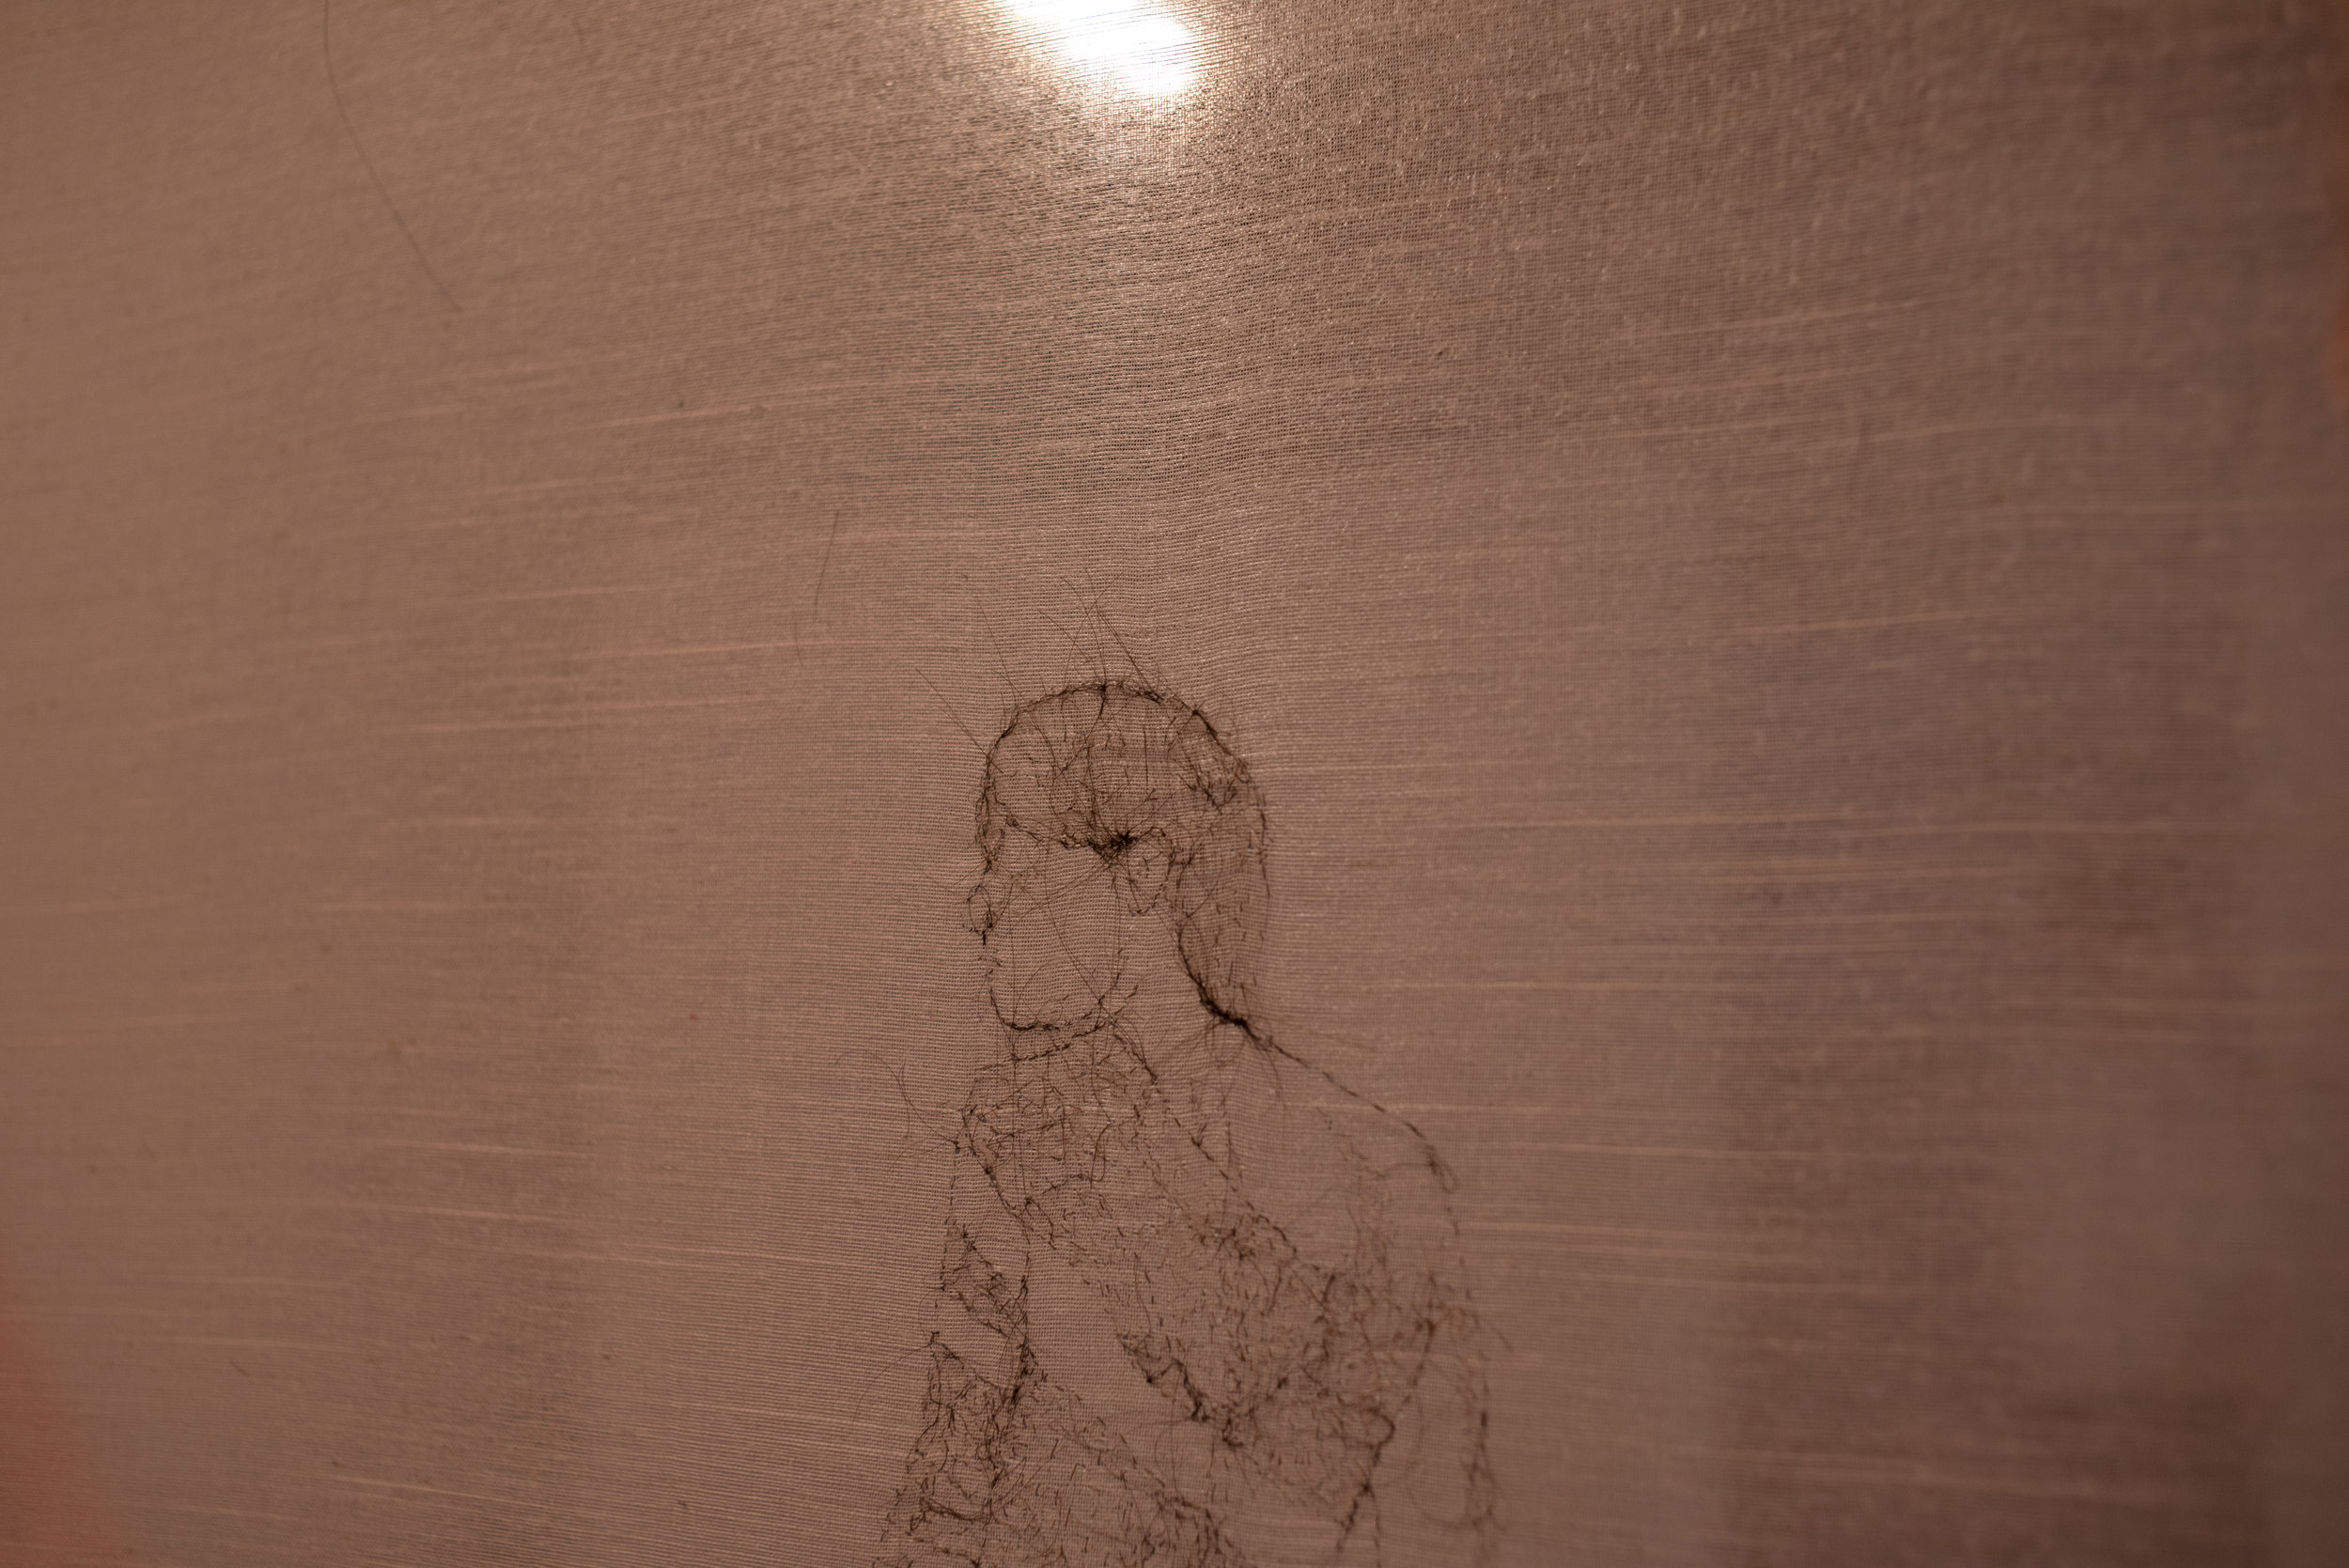 """Human Hair Embroidery on Pink Curtain, 35.5x46.5"""""""